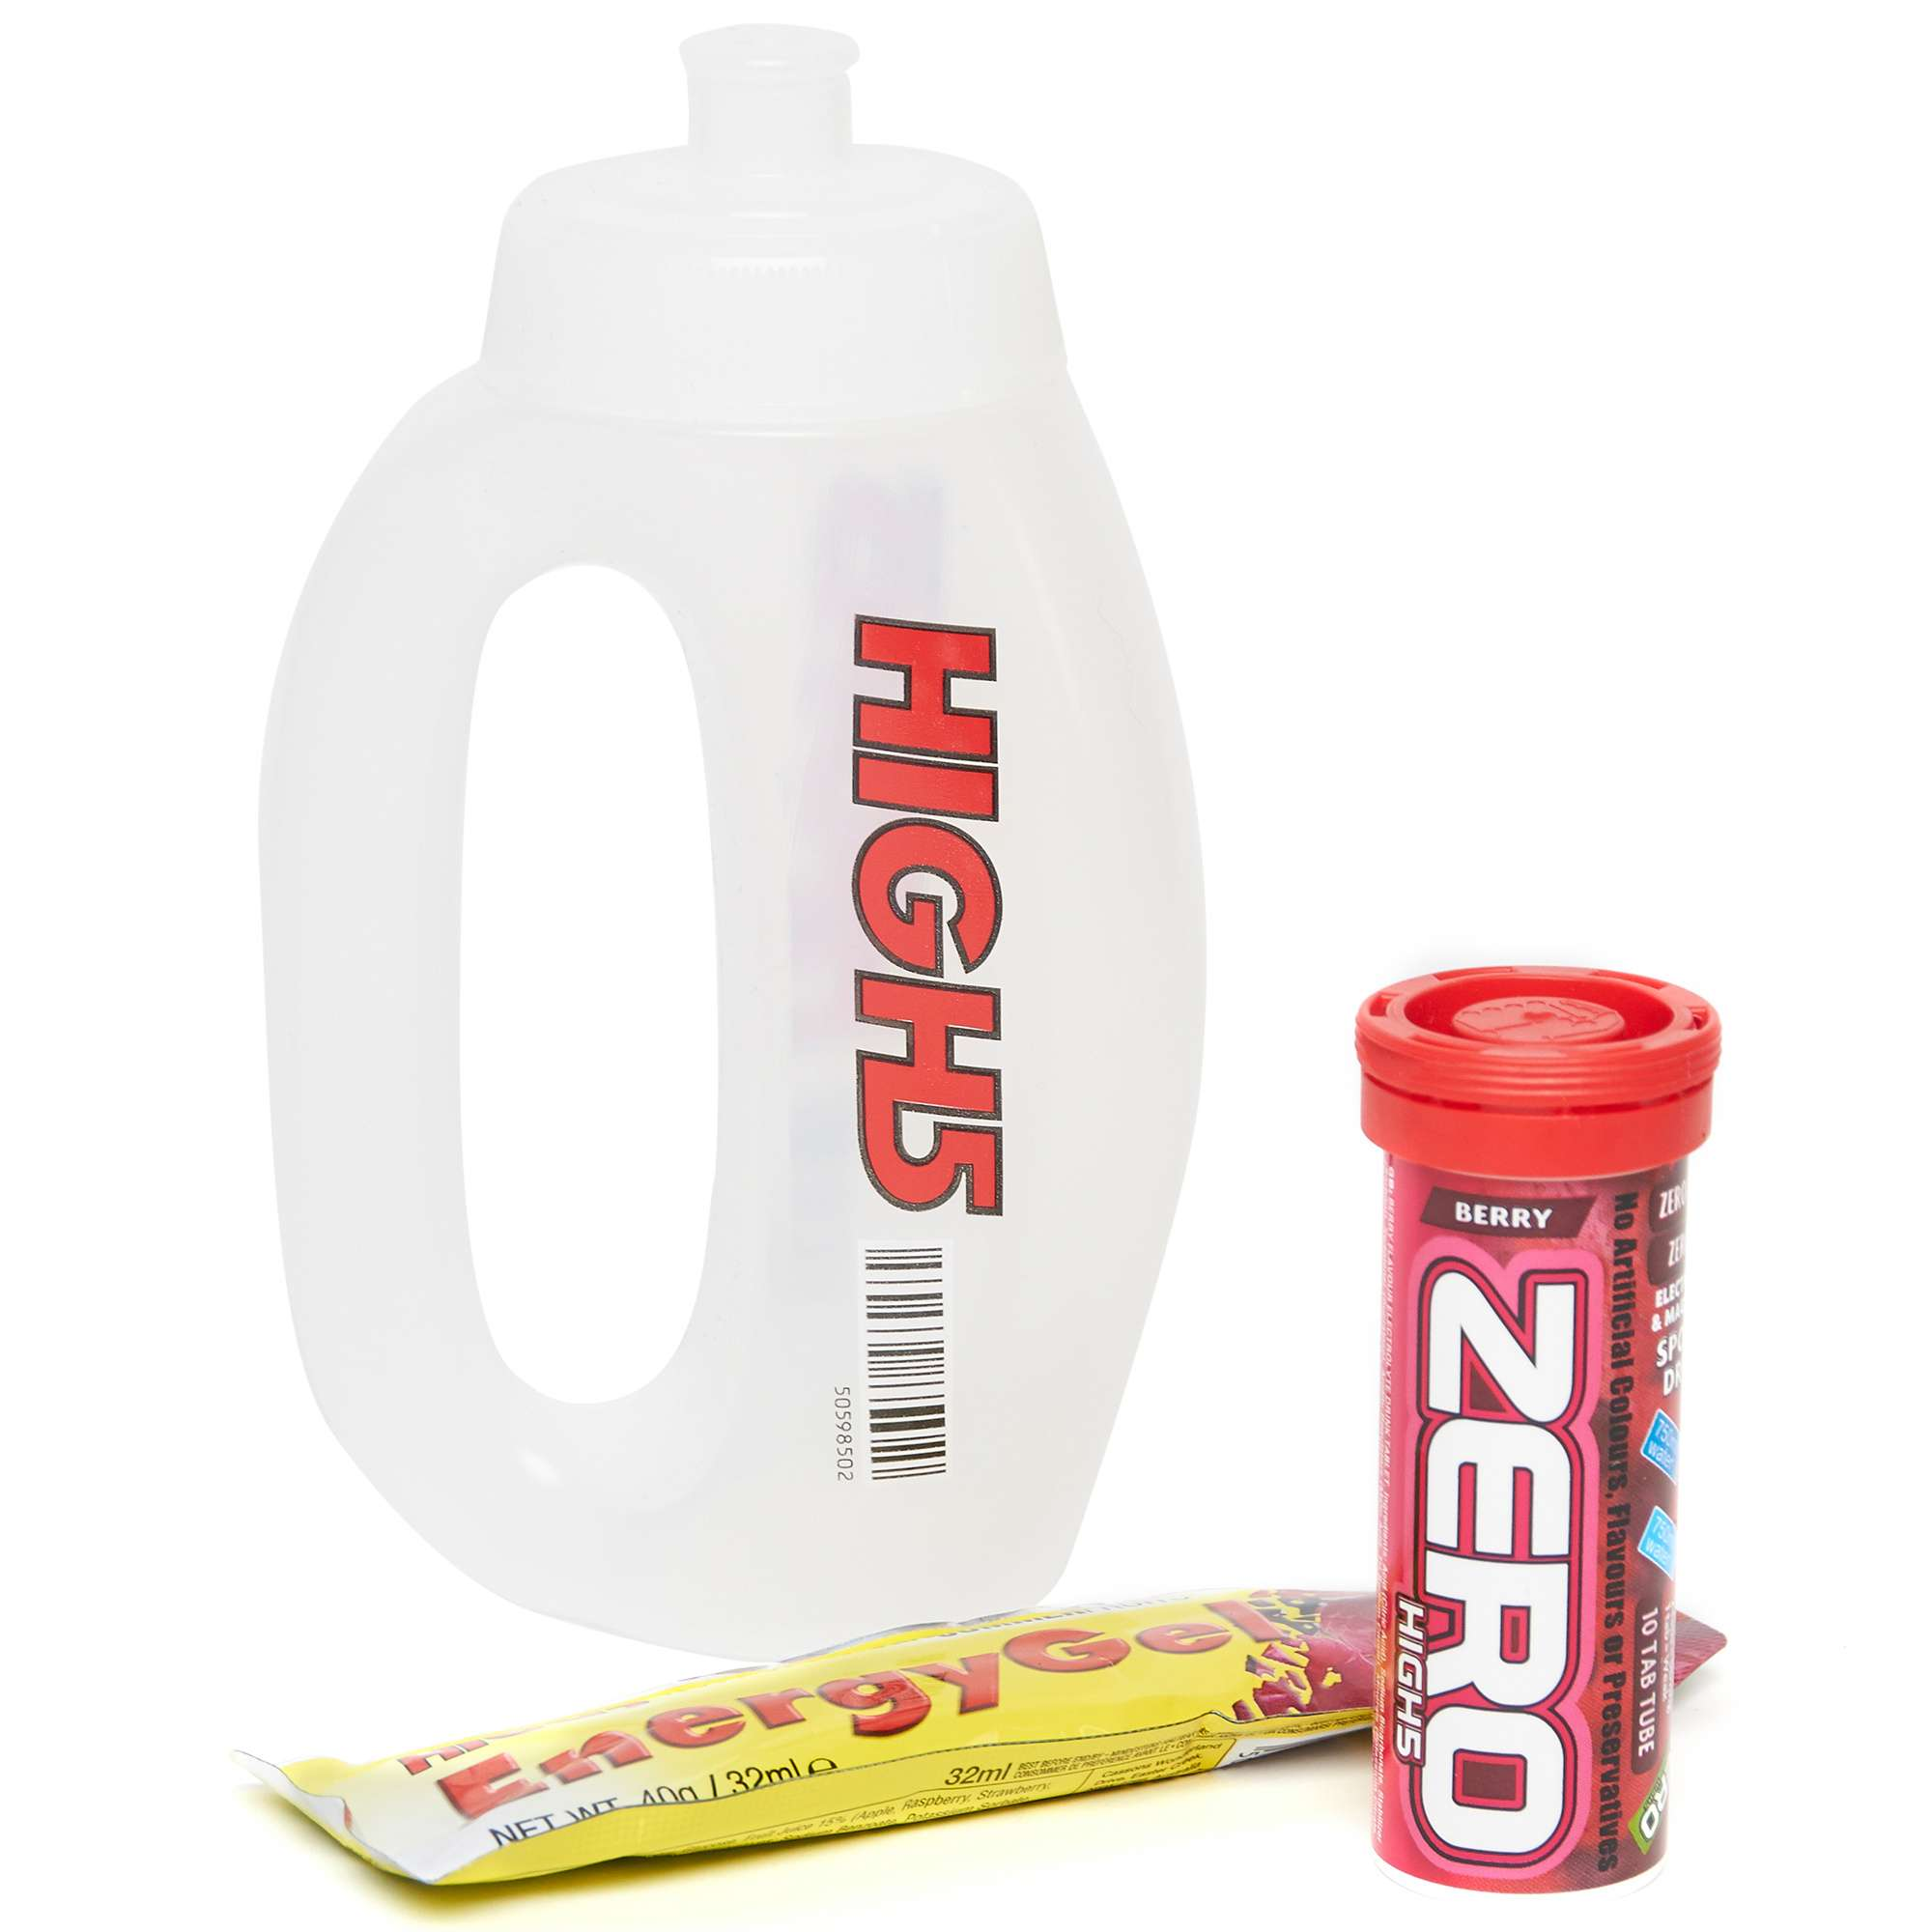 HIGH 5 Run Bottle, Zero 10 Berry Hydration Tube and Citrus Energy Gel